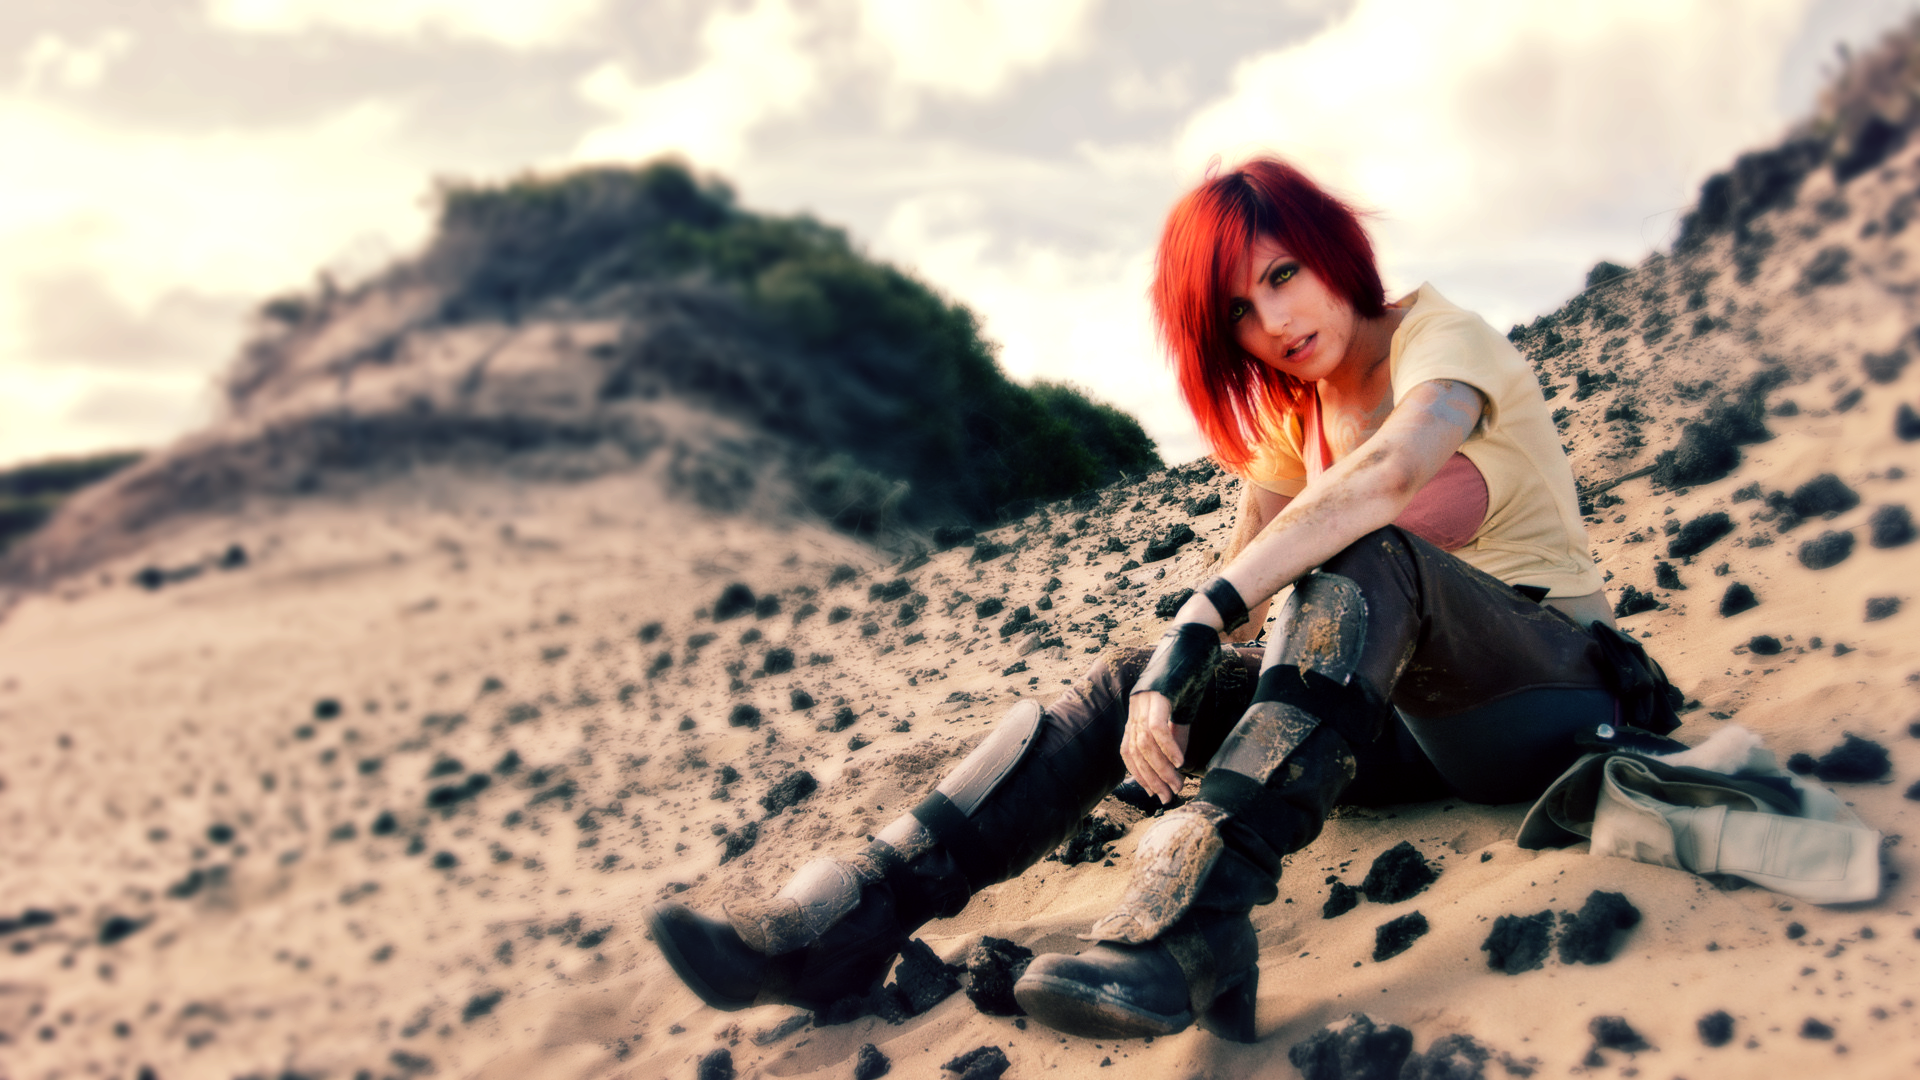 hd cosplay wallpaper full hd pictures